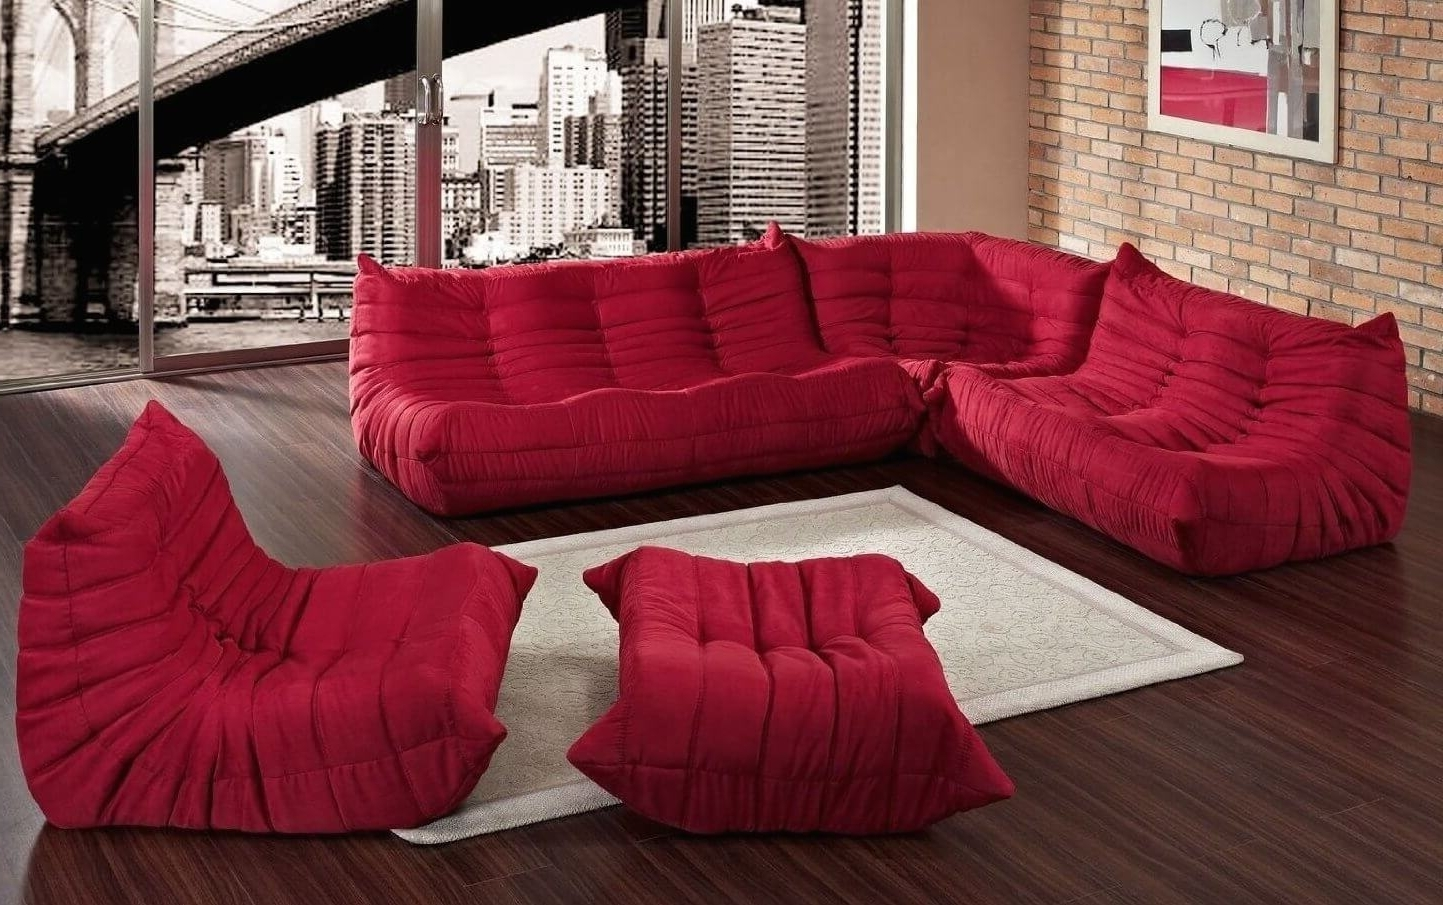 20 Types Of Modular Sectional Sofas Inside Well Liked Sectional Sofas That Can Be Rearranged (View 1 of 20)